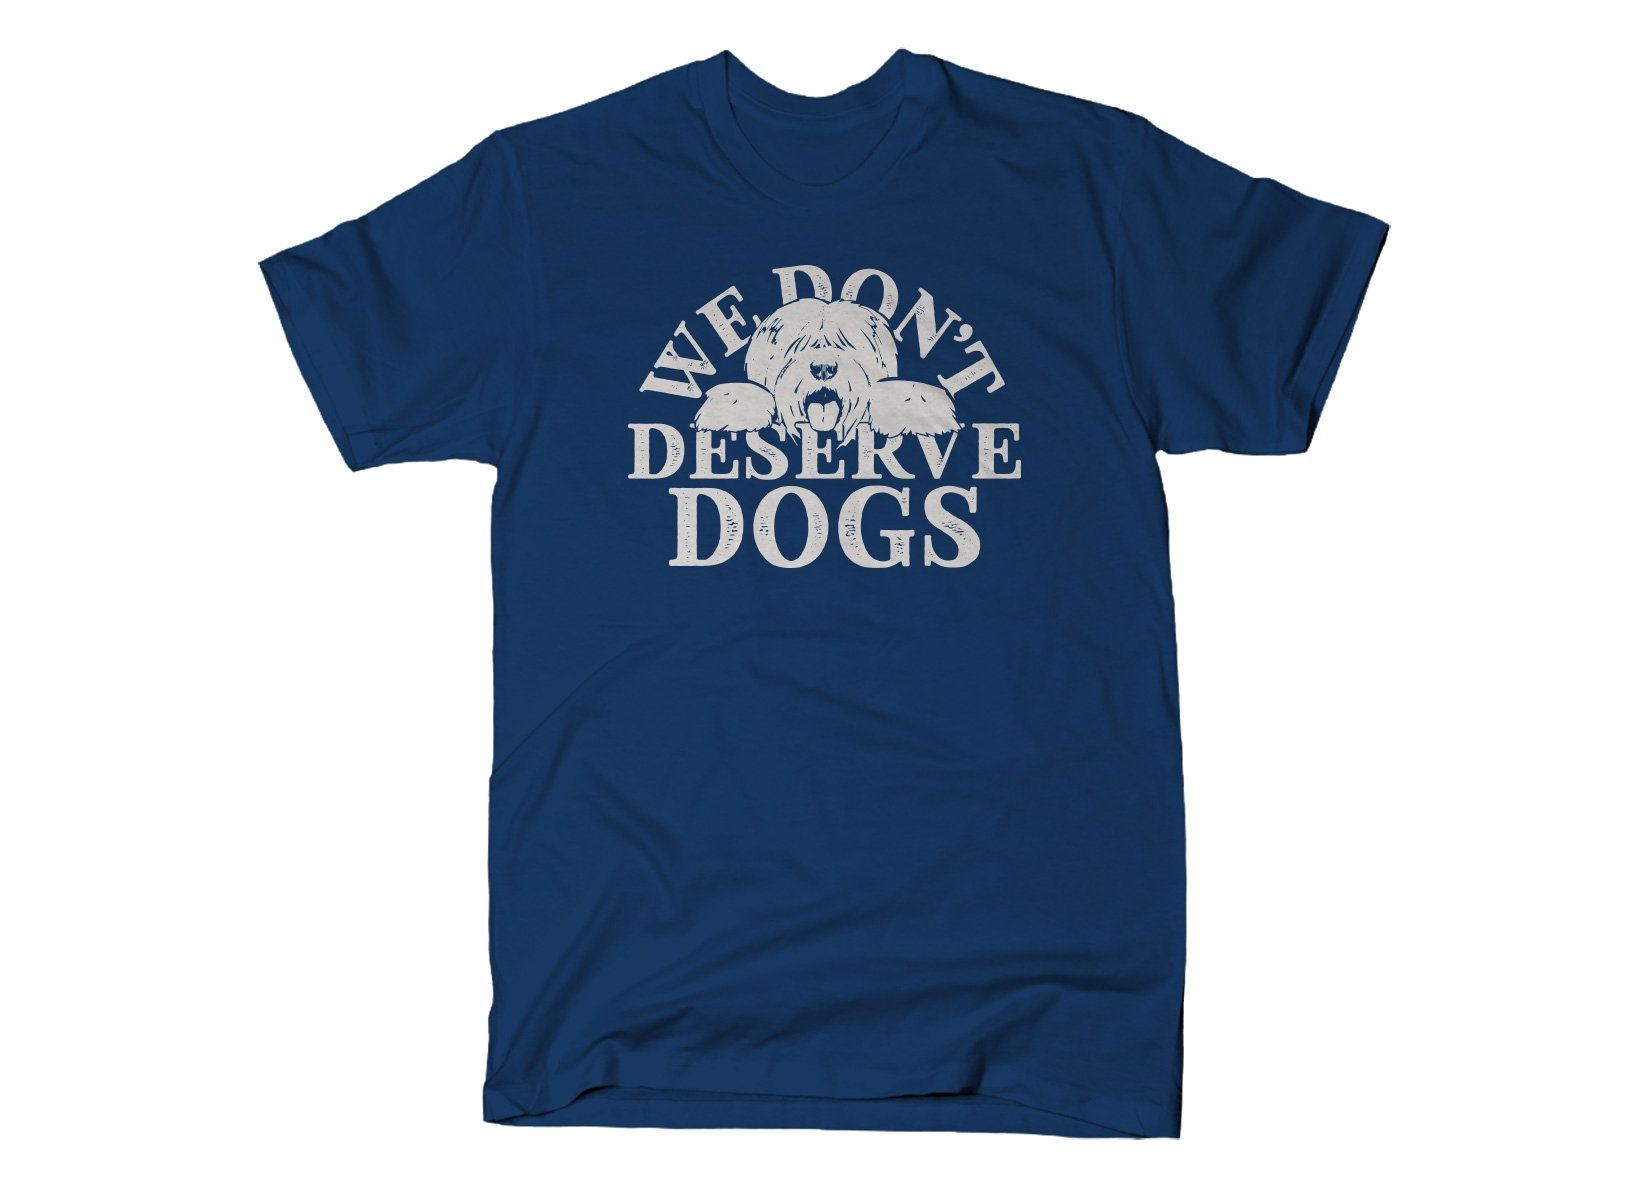 We Don't Deserve Dogs on Mens T-Shirt